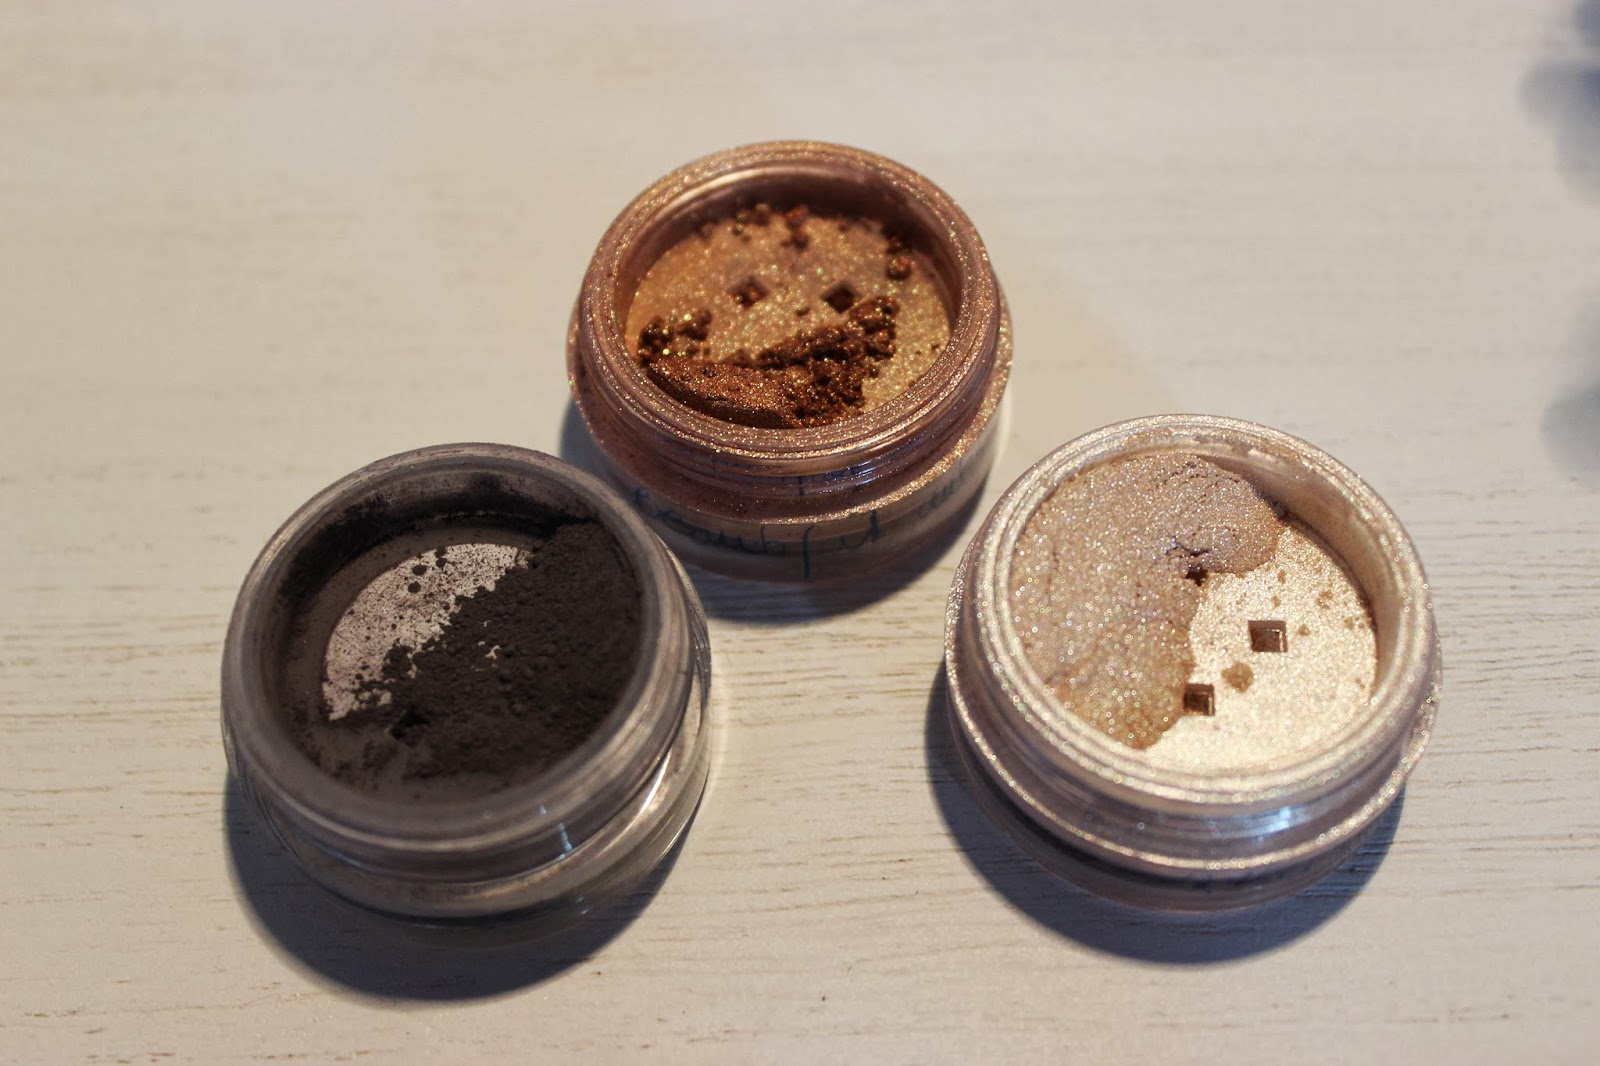 bareMinerals Beautifull autumn, velvet charcoal, queen phyllis